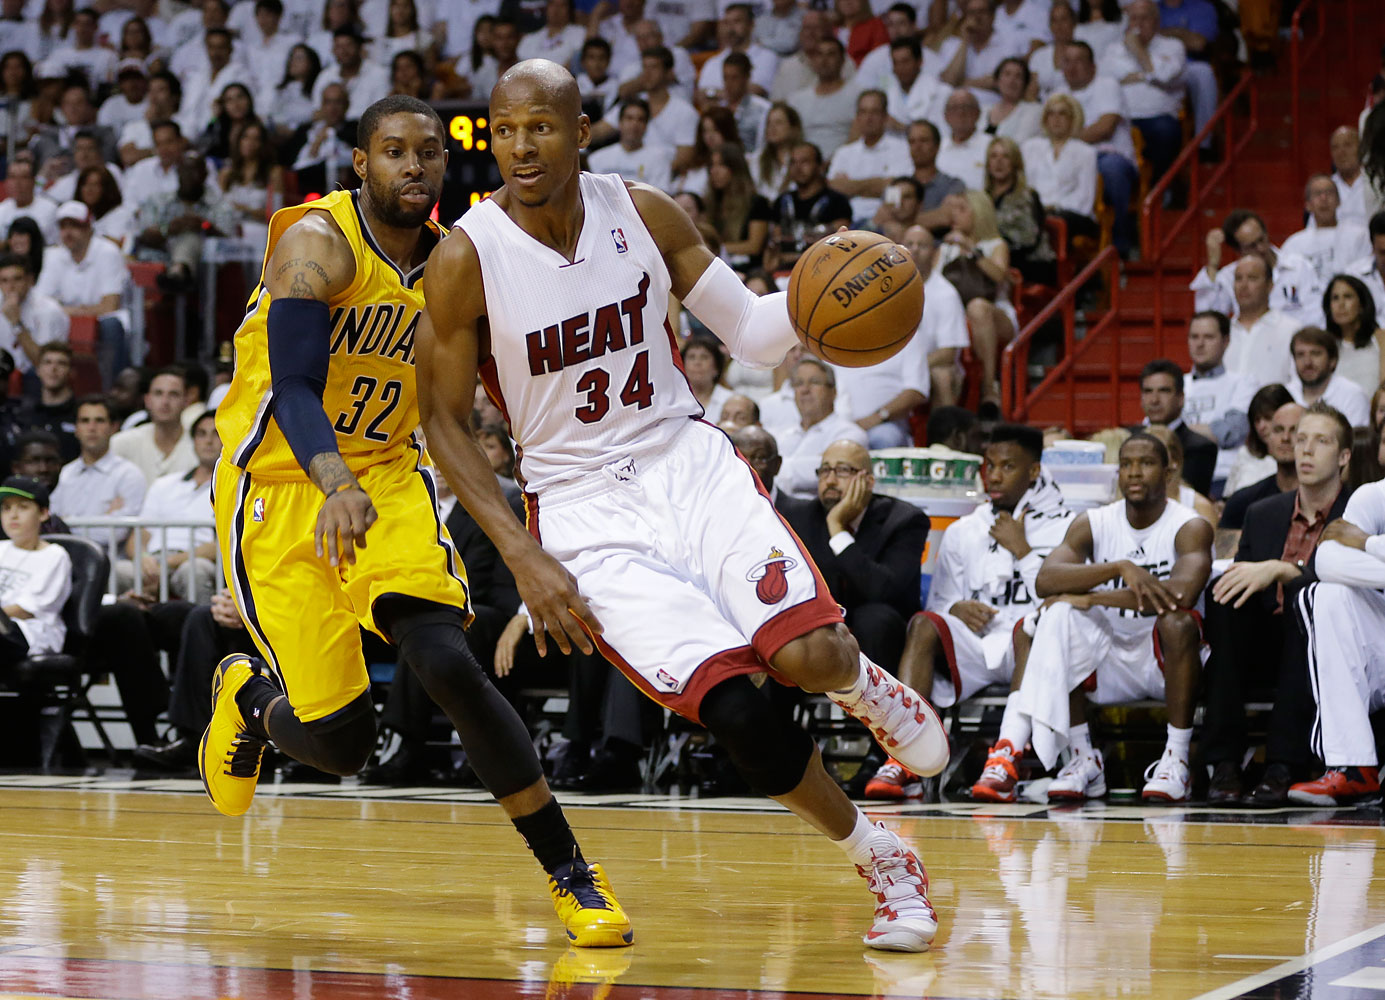 Miami Heat guard Ray Allen, 34, drives to the basket as Indiana Pacers guard C.J. Watson, 32, defends, during the second half Game 6 in the NBA basketball playoffs Eastern Conference finals, May 30, 2014, in Miami.